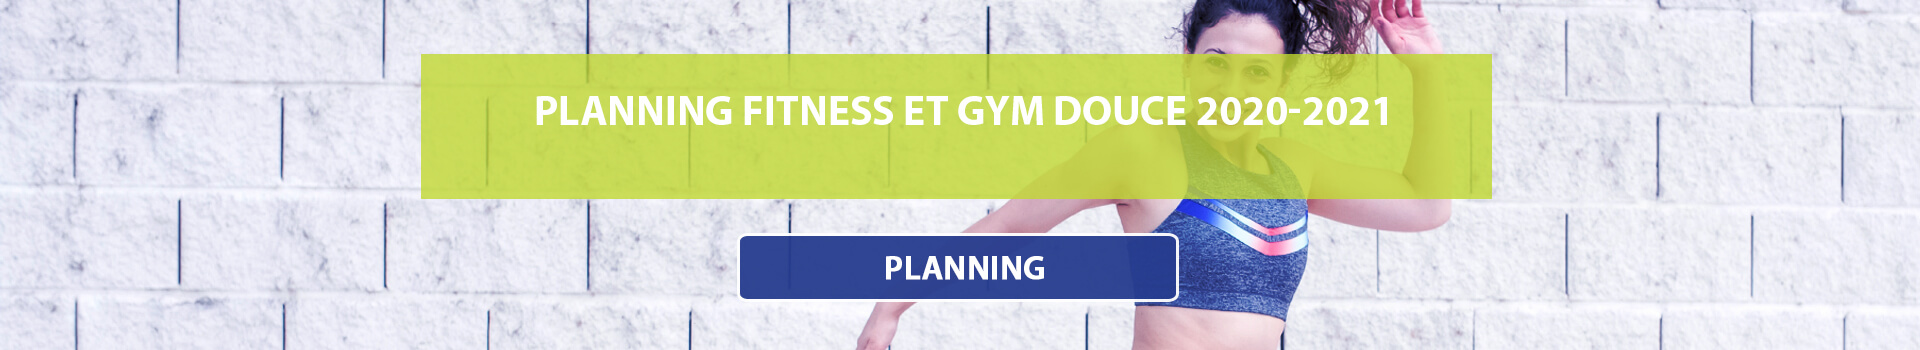 bandeau_PLANNING-FITNESS-2020-2021